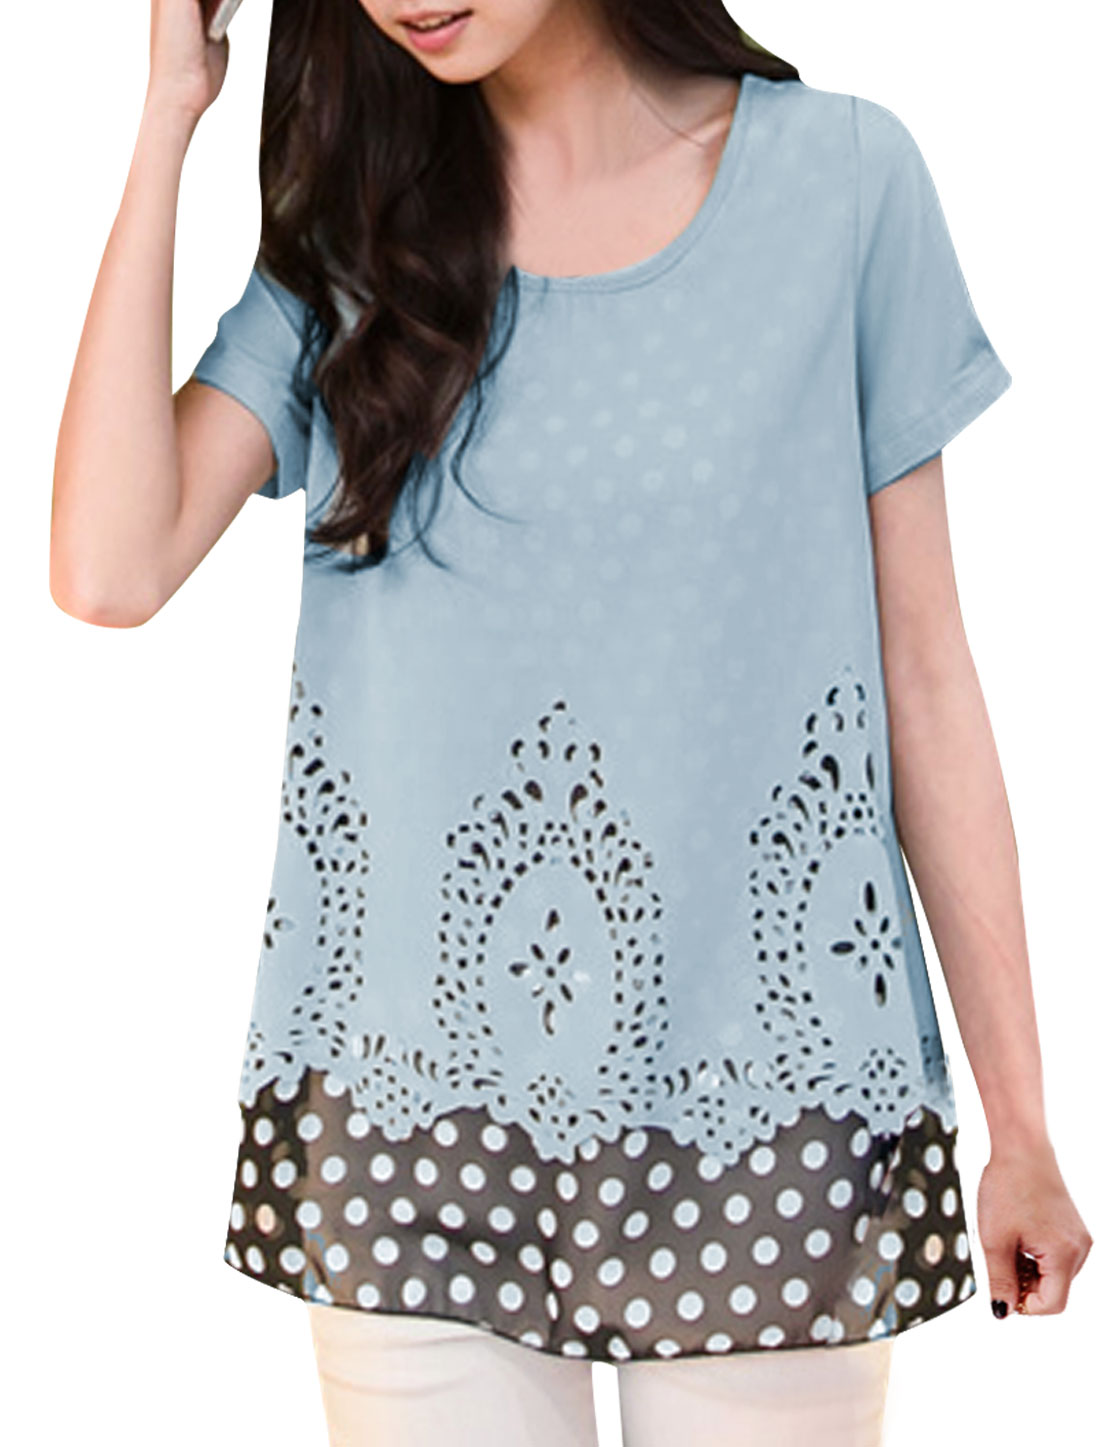 Ladies Dots Prints Round Neck Layered Shirts Shirt Light Blue S